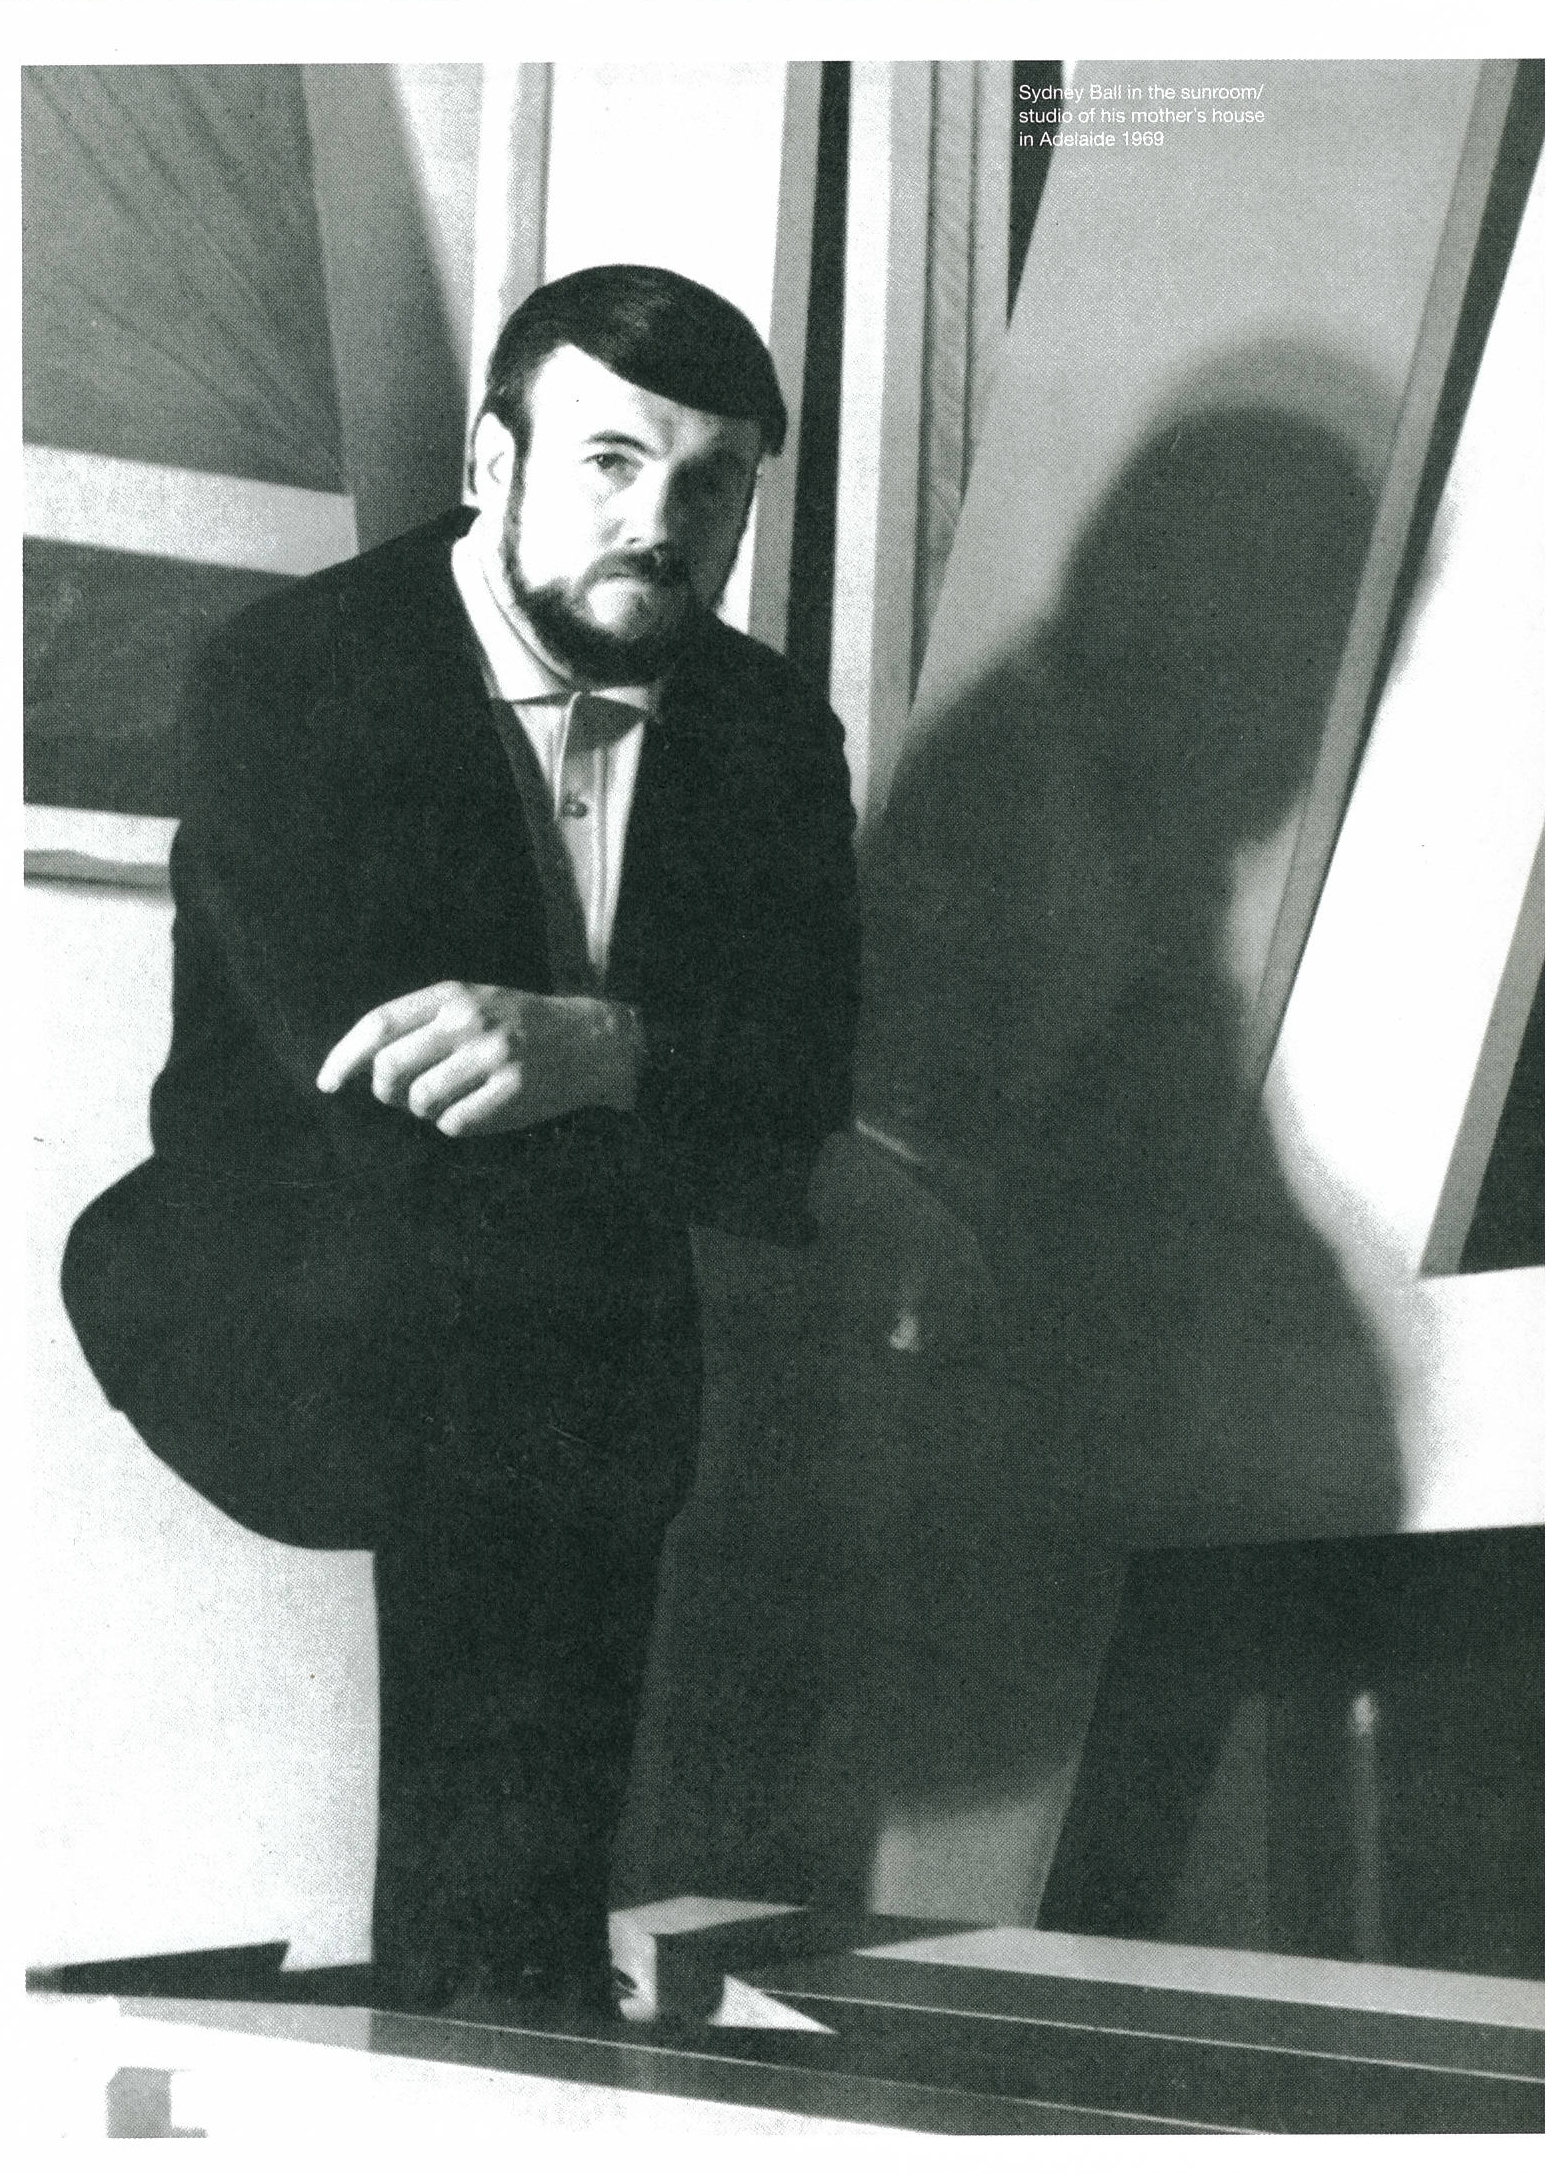 Sydney Ball in the sunroom/studio of his mother's house in Adelaide, 1969.